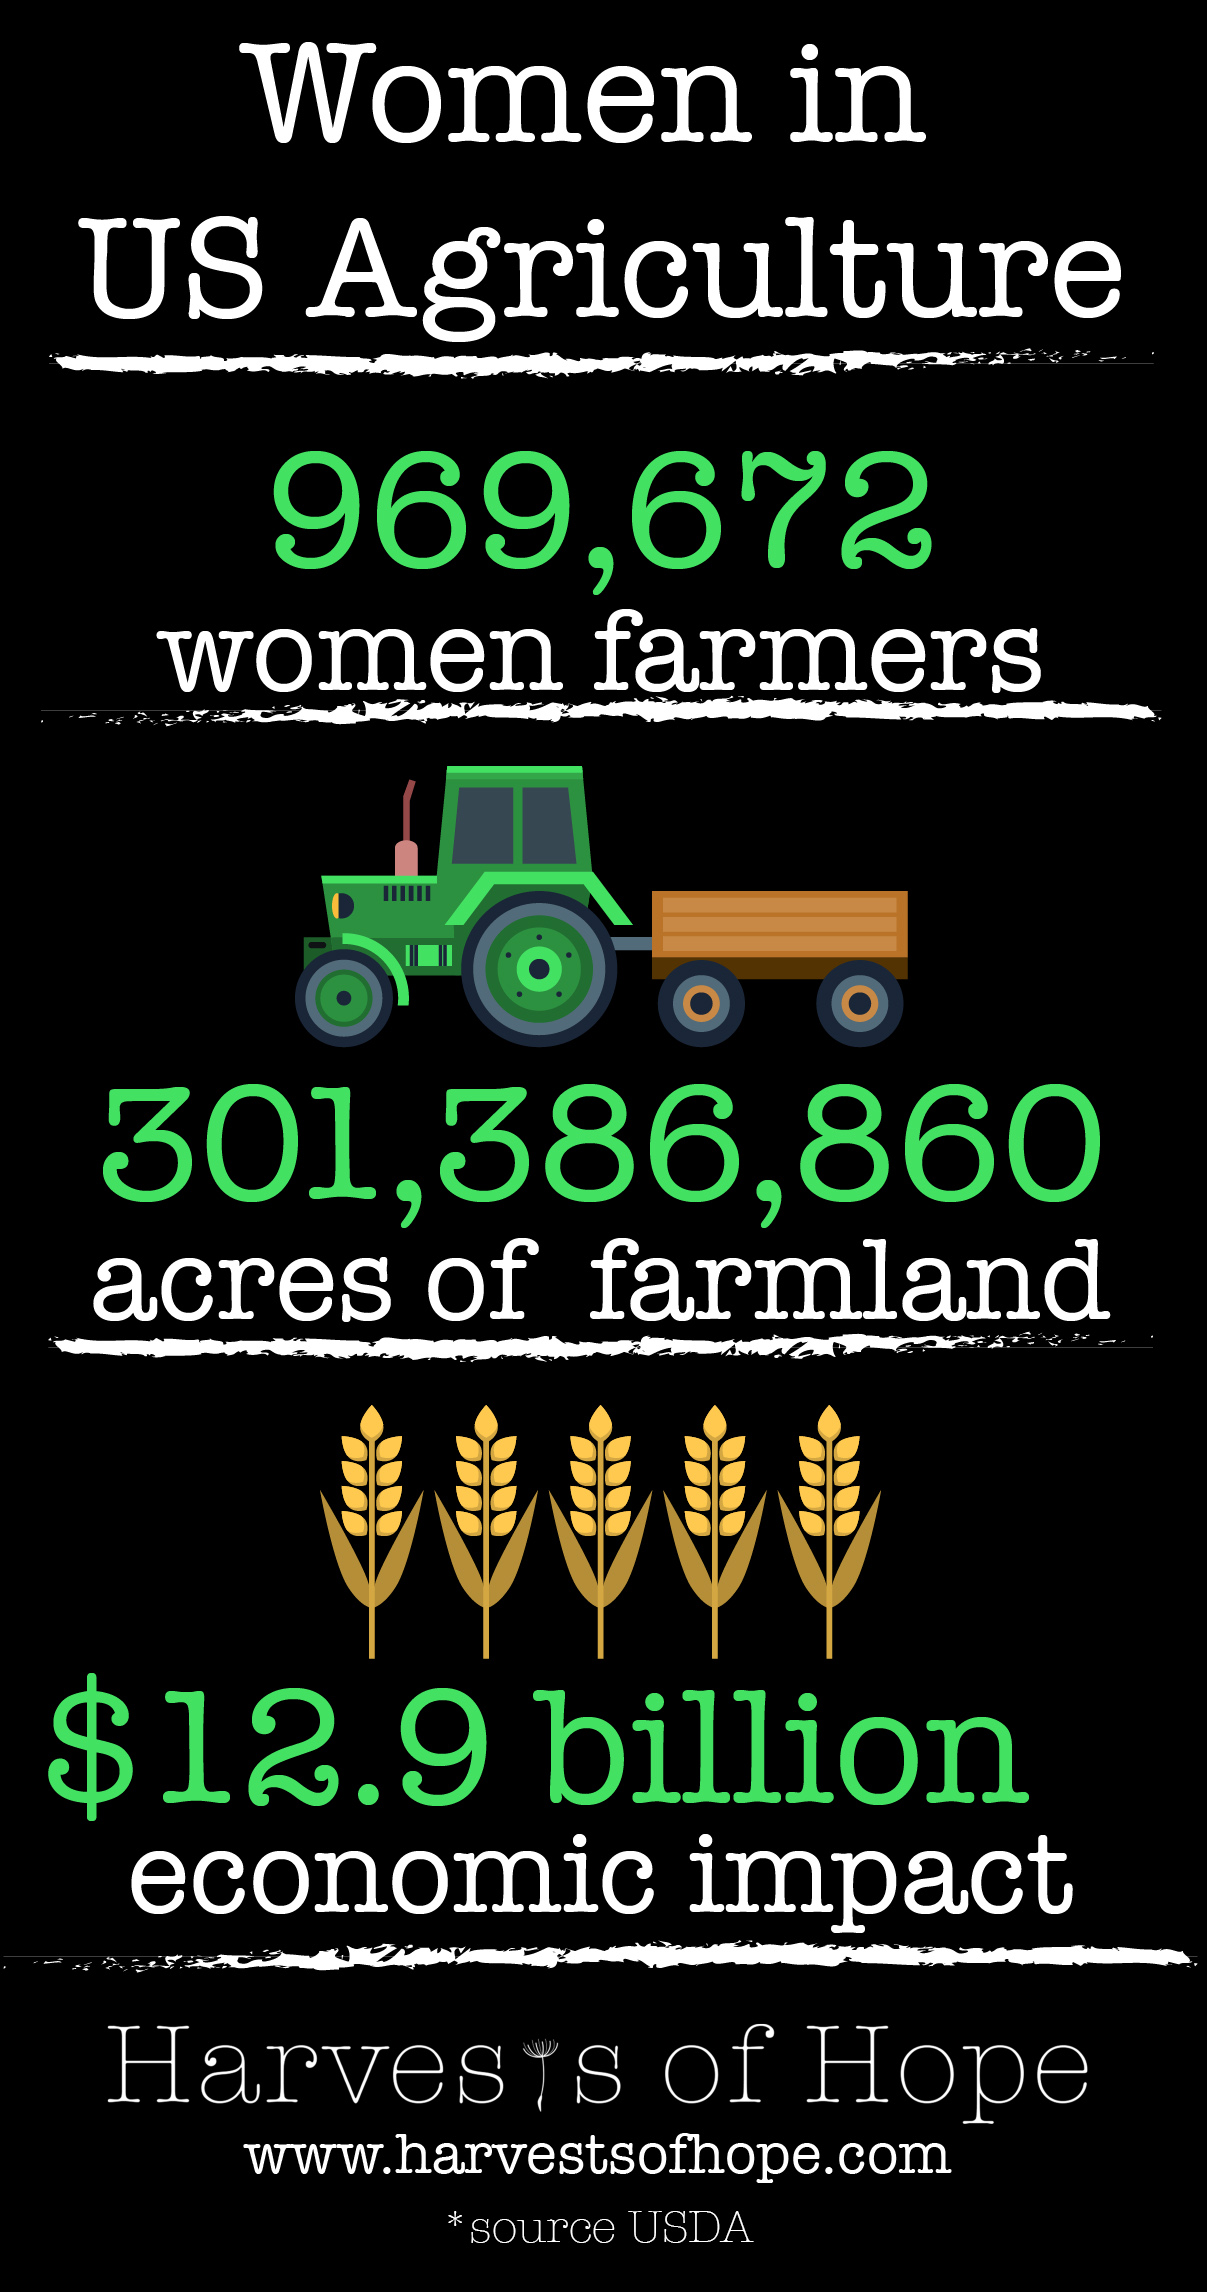 Infographic on women US agriculture